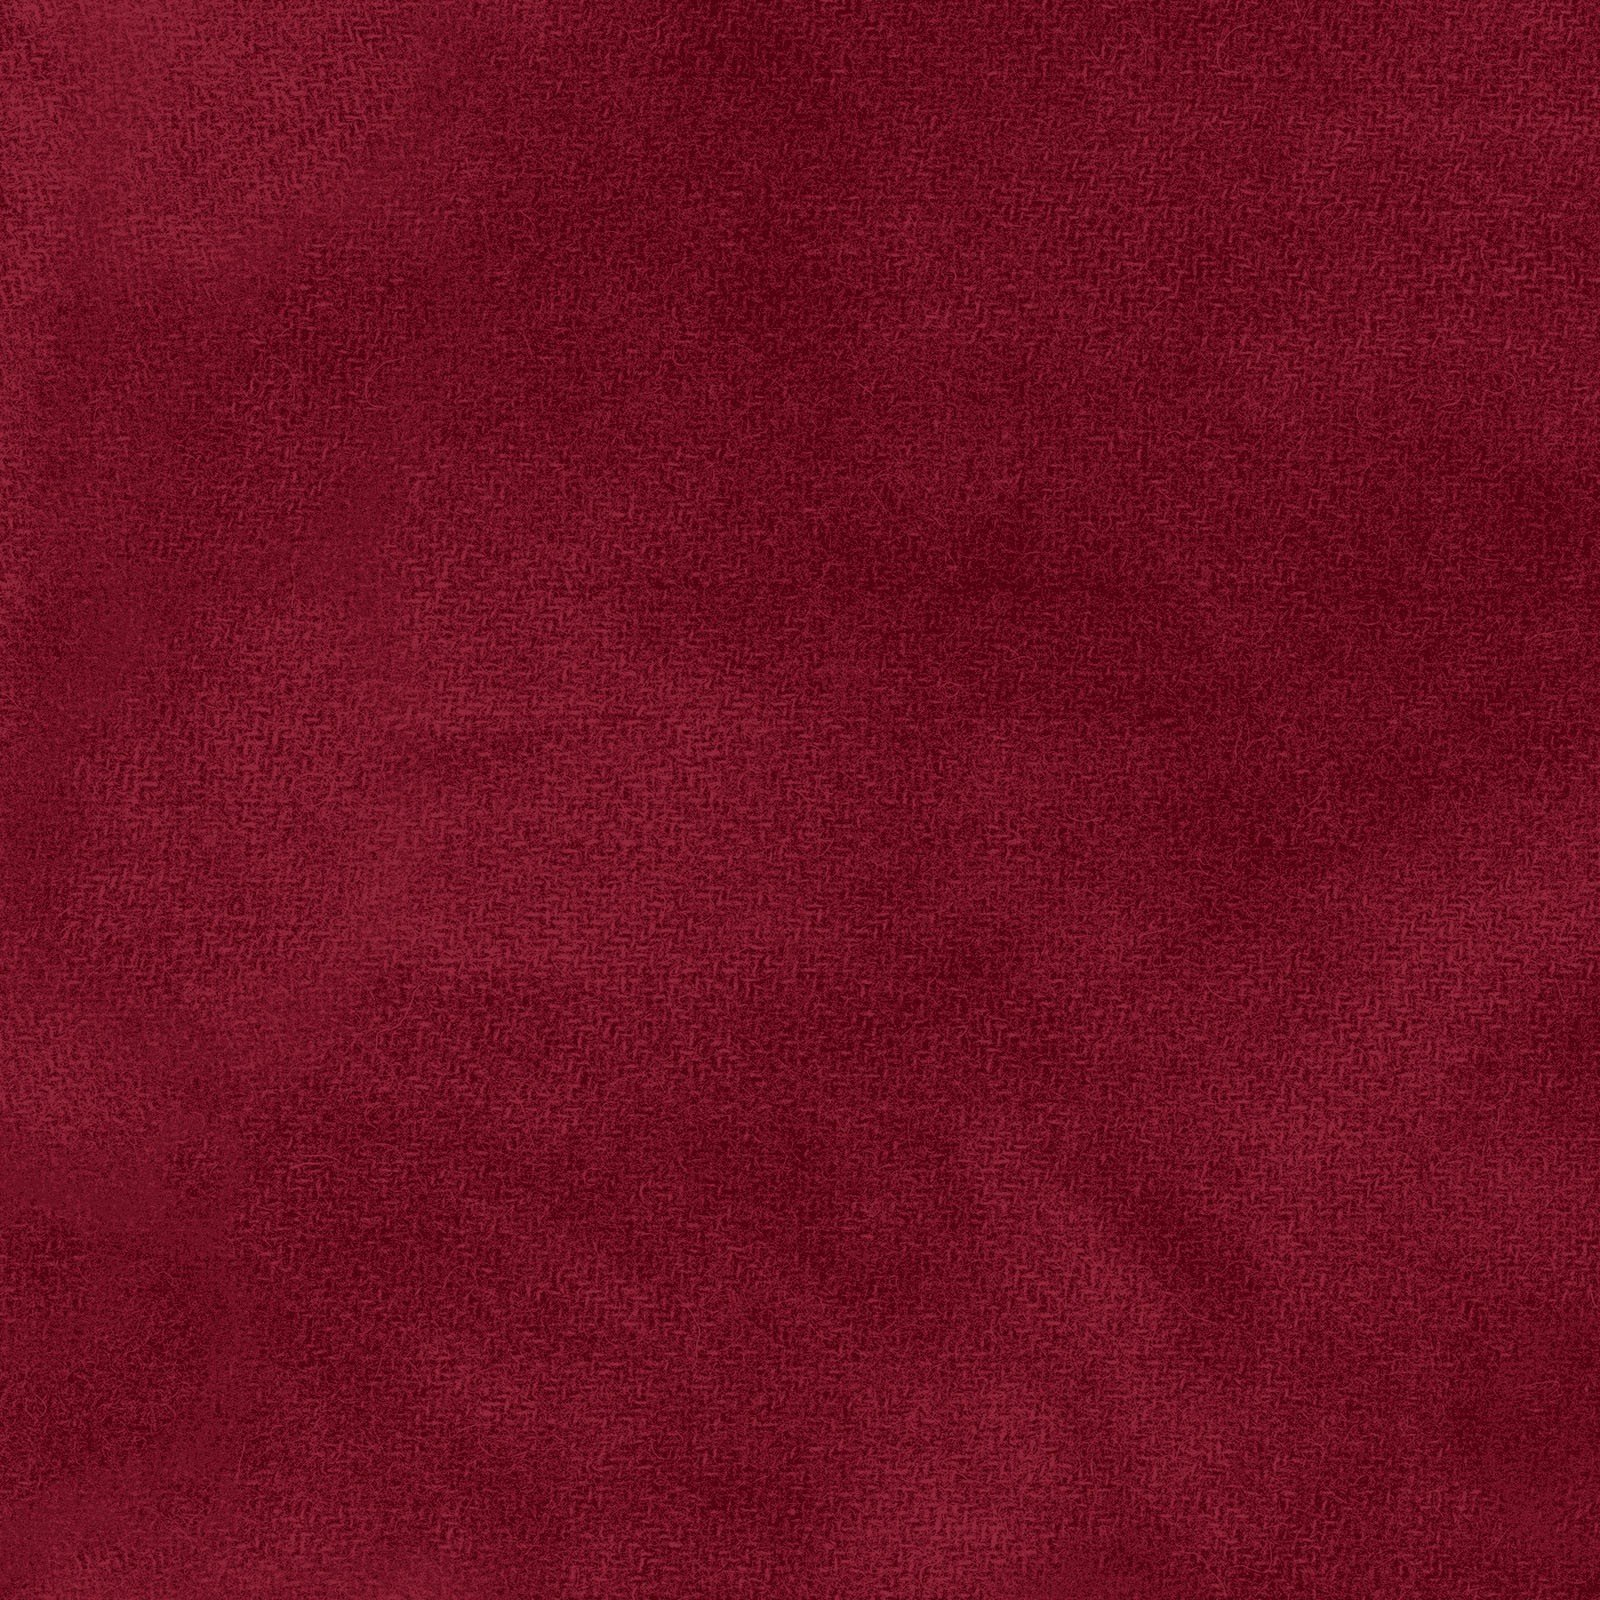 Woolies Flannel - Bordeaux FQ<br/>Maywood Studio F9200-M